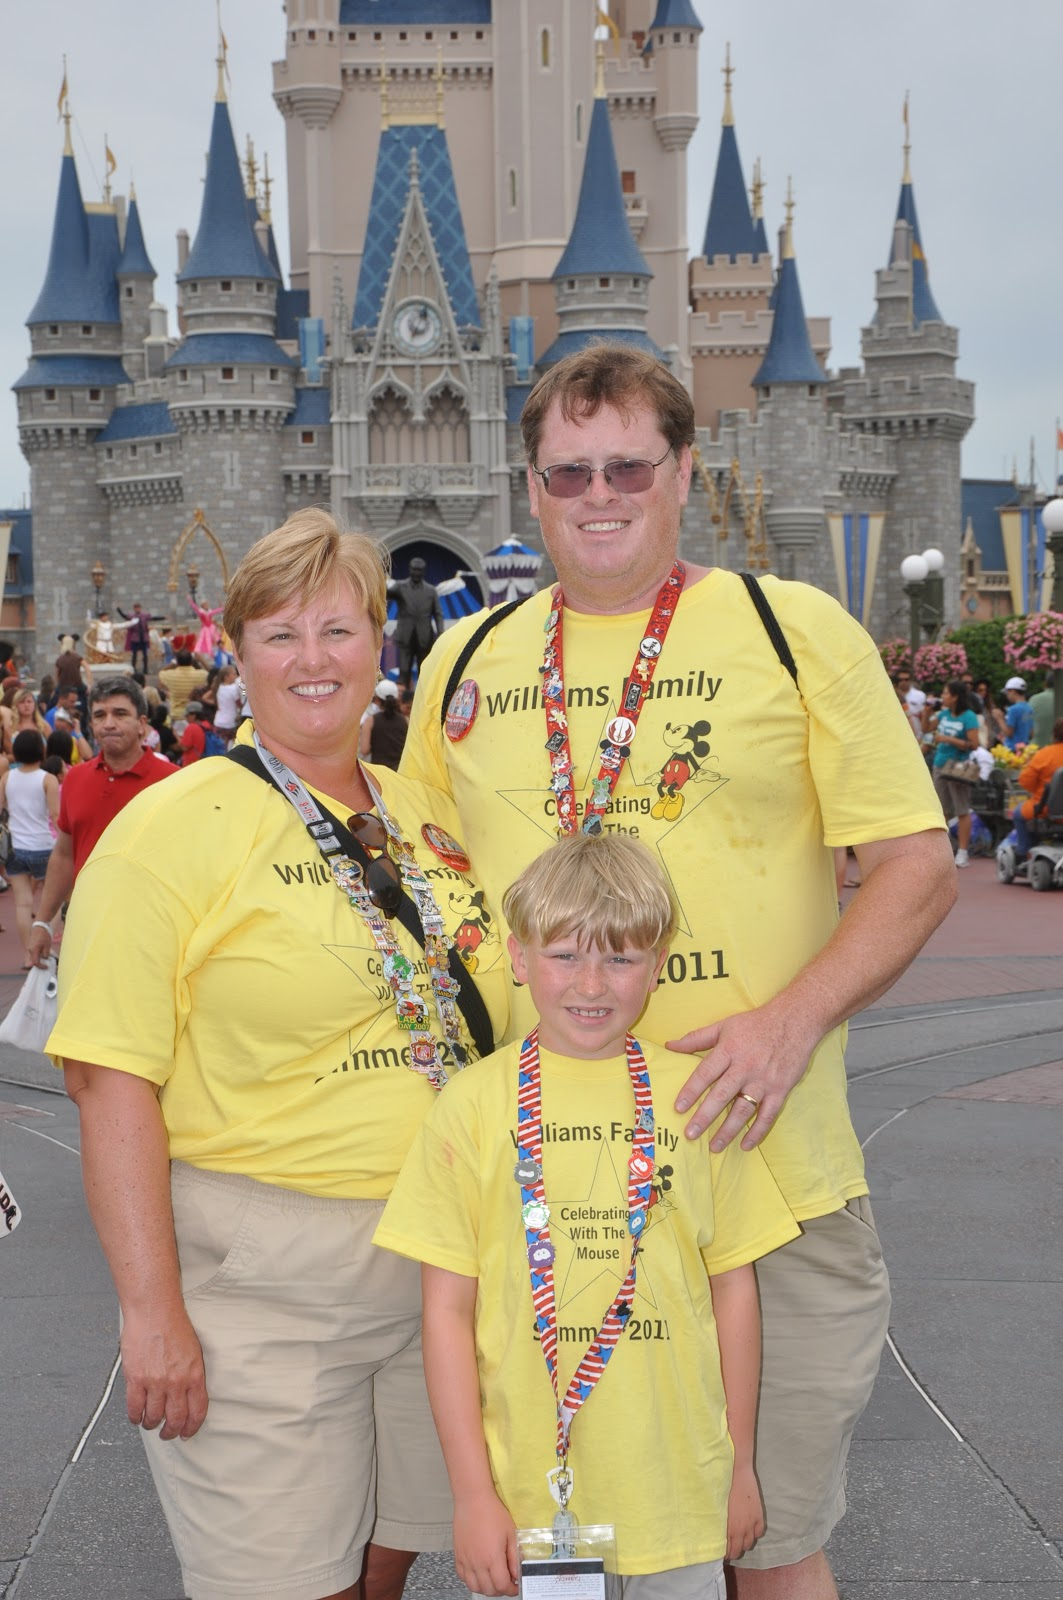 Design t shirt zazzle - These Yellow Celebrating With The Mouse Shirts Were A Custom Design On Zazzle Com To Commemorate Our Disney Cruise Line Walt Disney World Summer Vacation